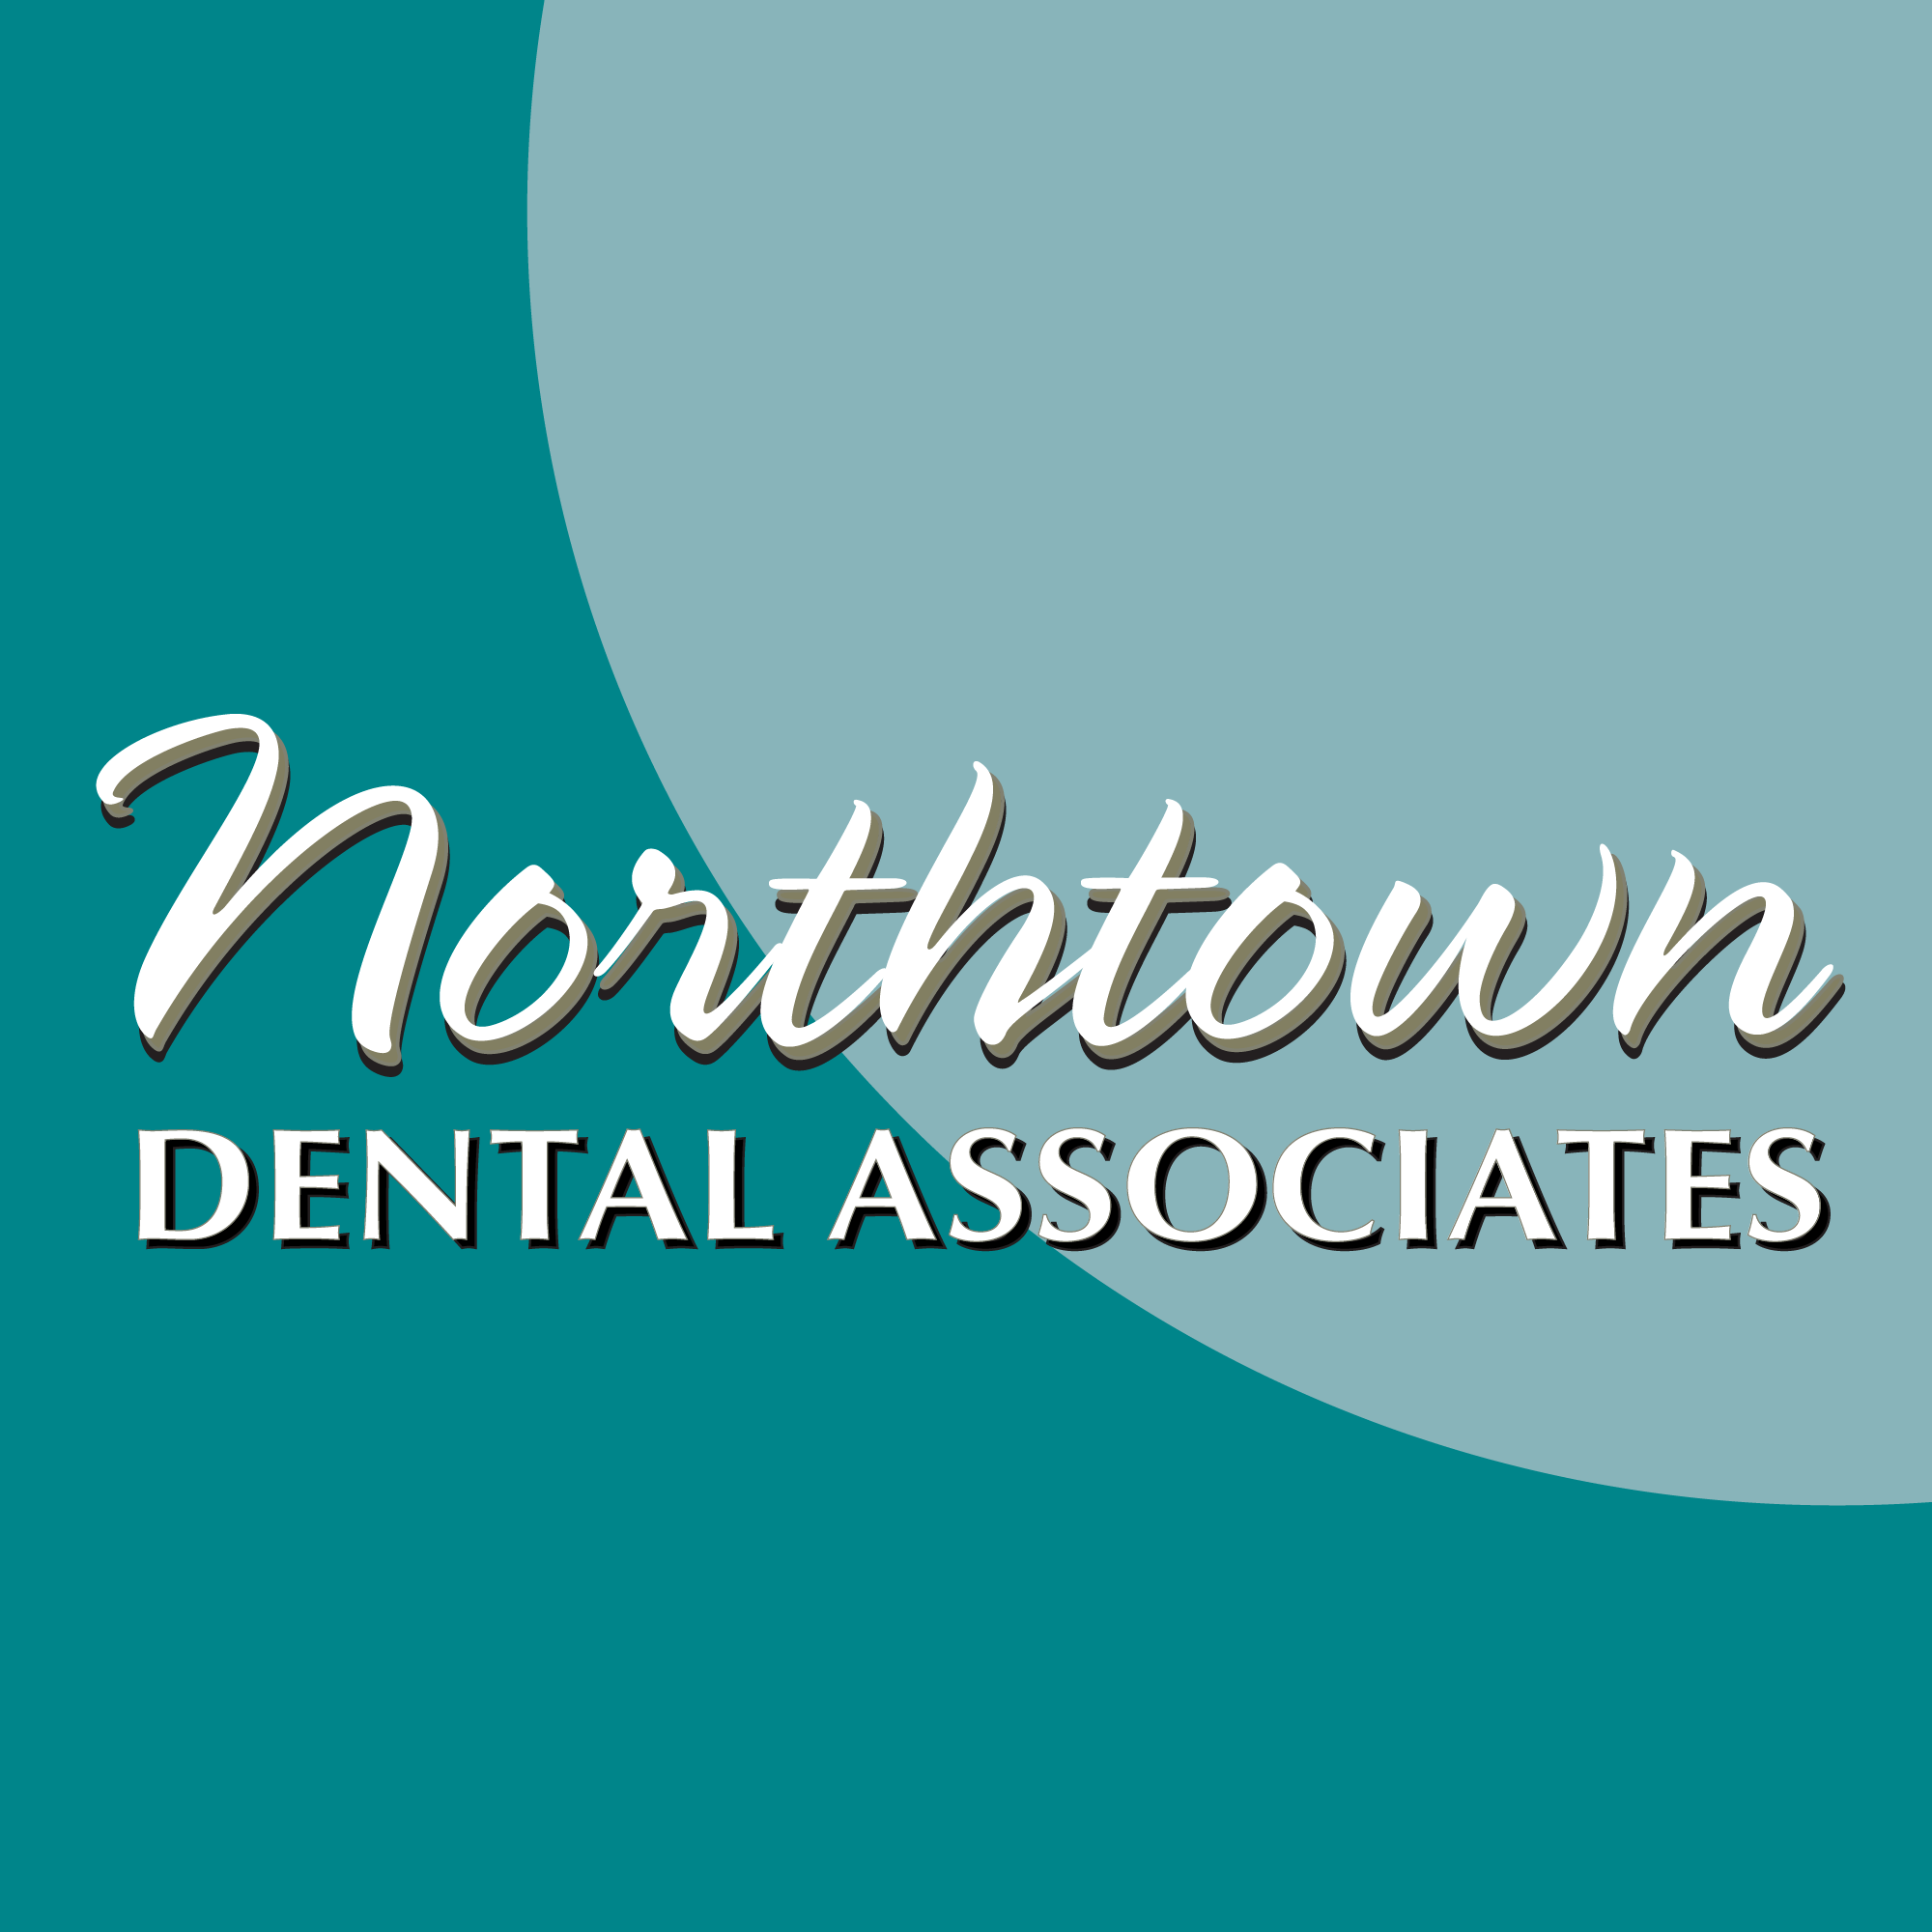 Northtown Dental Associates  Edmonton, Ab  2959450 137. Boca Raton Auto Repair Lto 5 Tape Drive Price. Online Nursing Schools Accredited. Public Service Electric & Gas. Water Softener Discharge Pest Control Advisor. What Is A Business Associate. Mortgage Companies Texas Alamo Auto Insurance. Data Migration Companies Walkout Deck Designs. Top Universities For Masters In Education